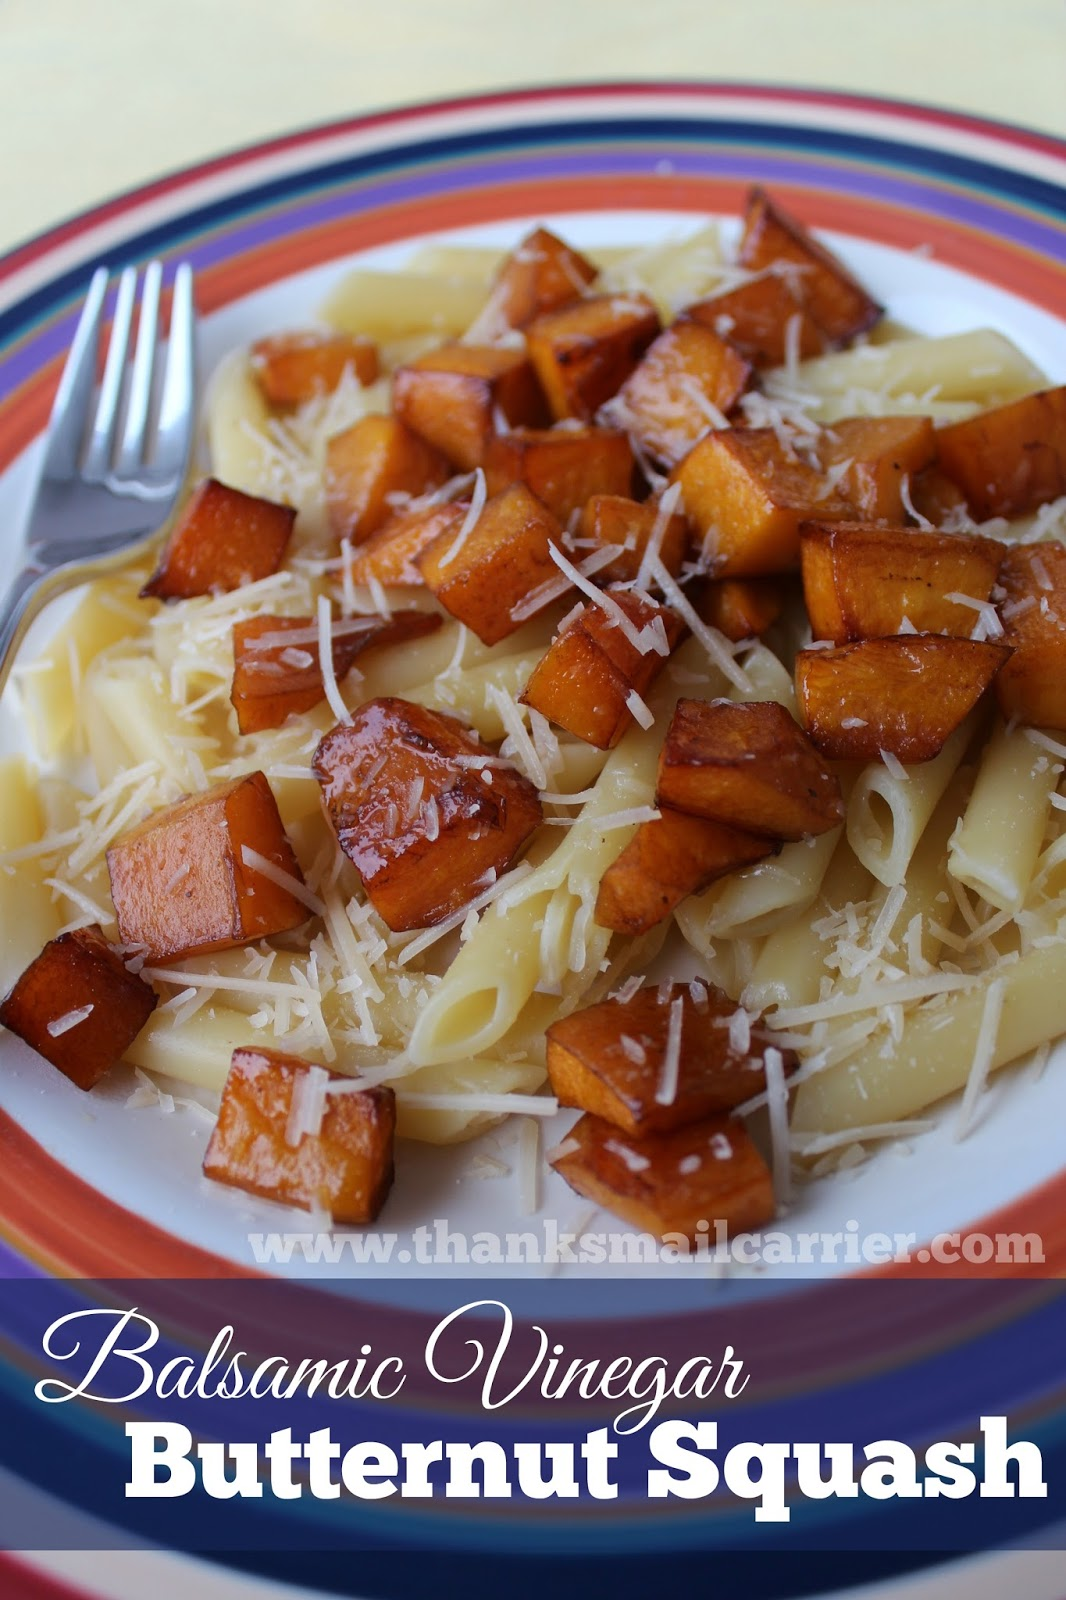 Balsamic Vinegar Butternut Squash